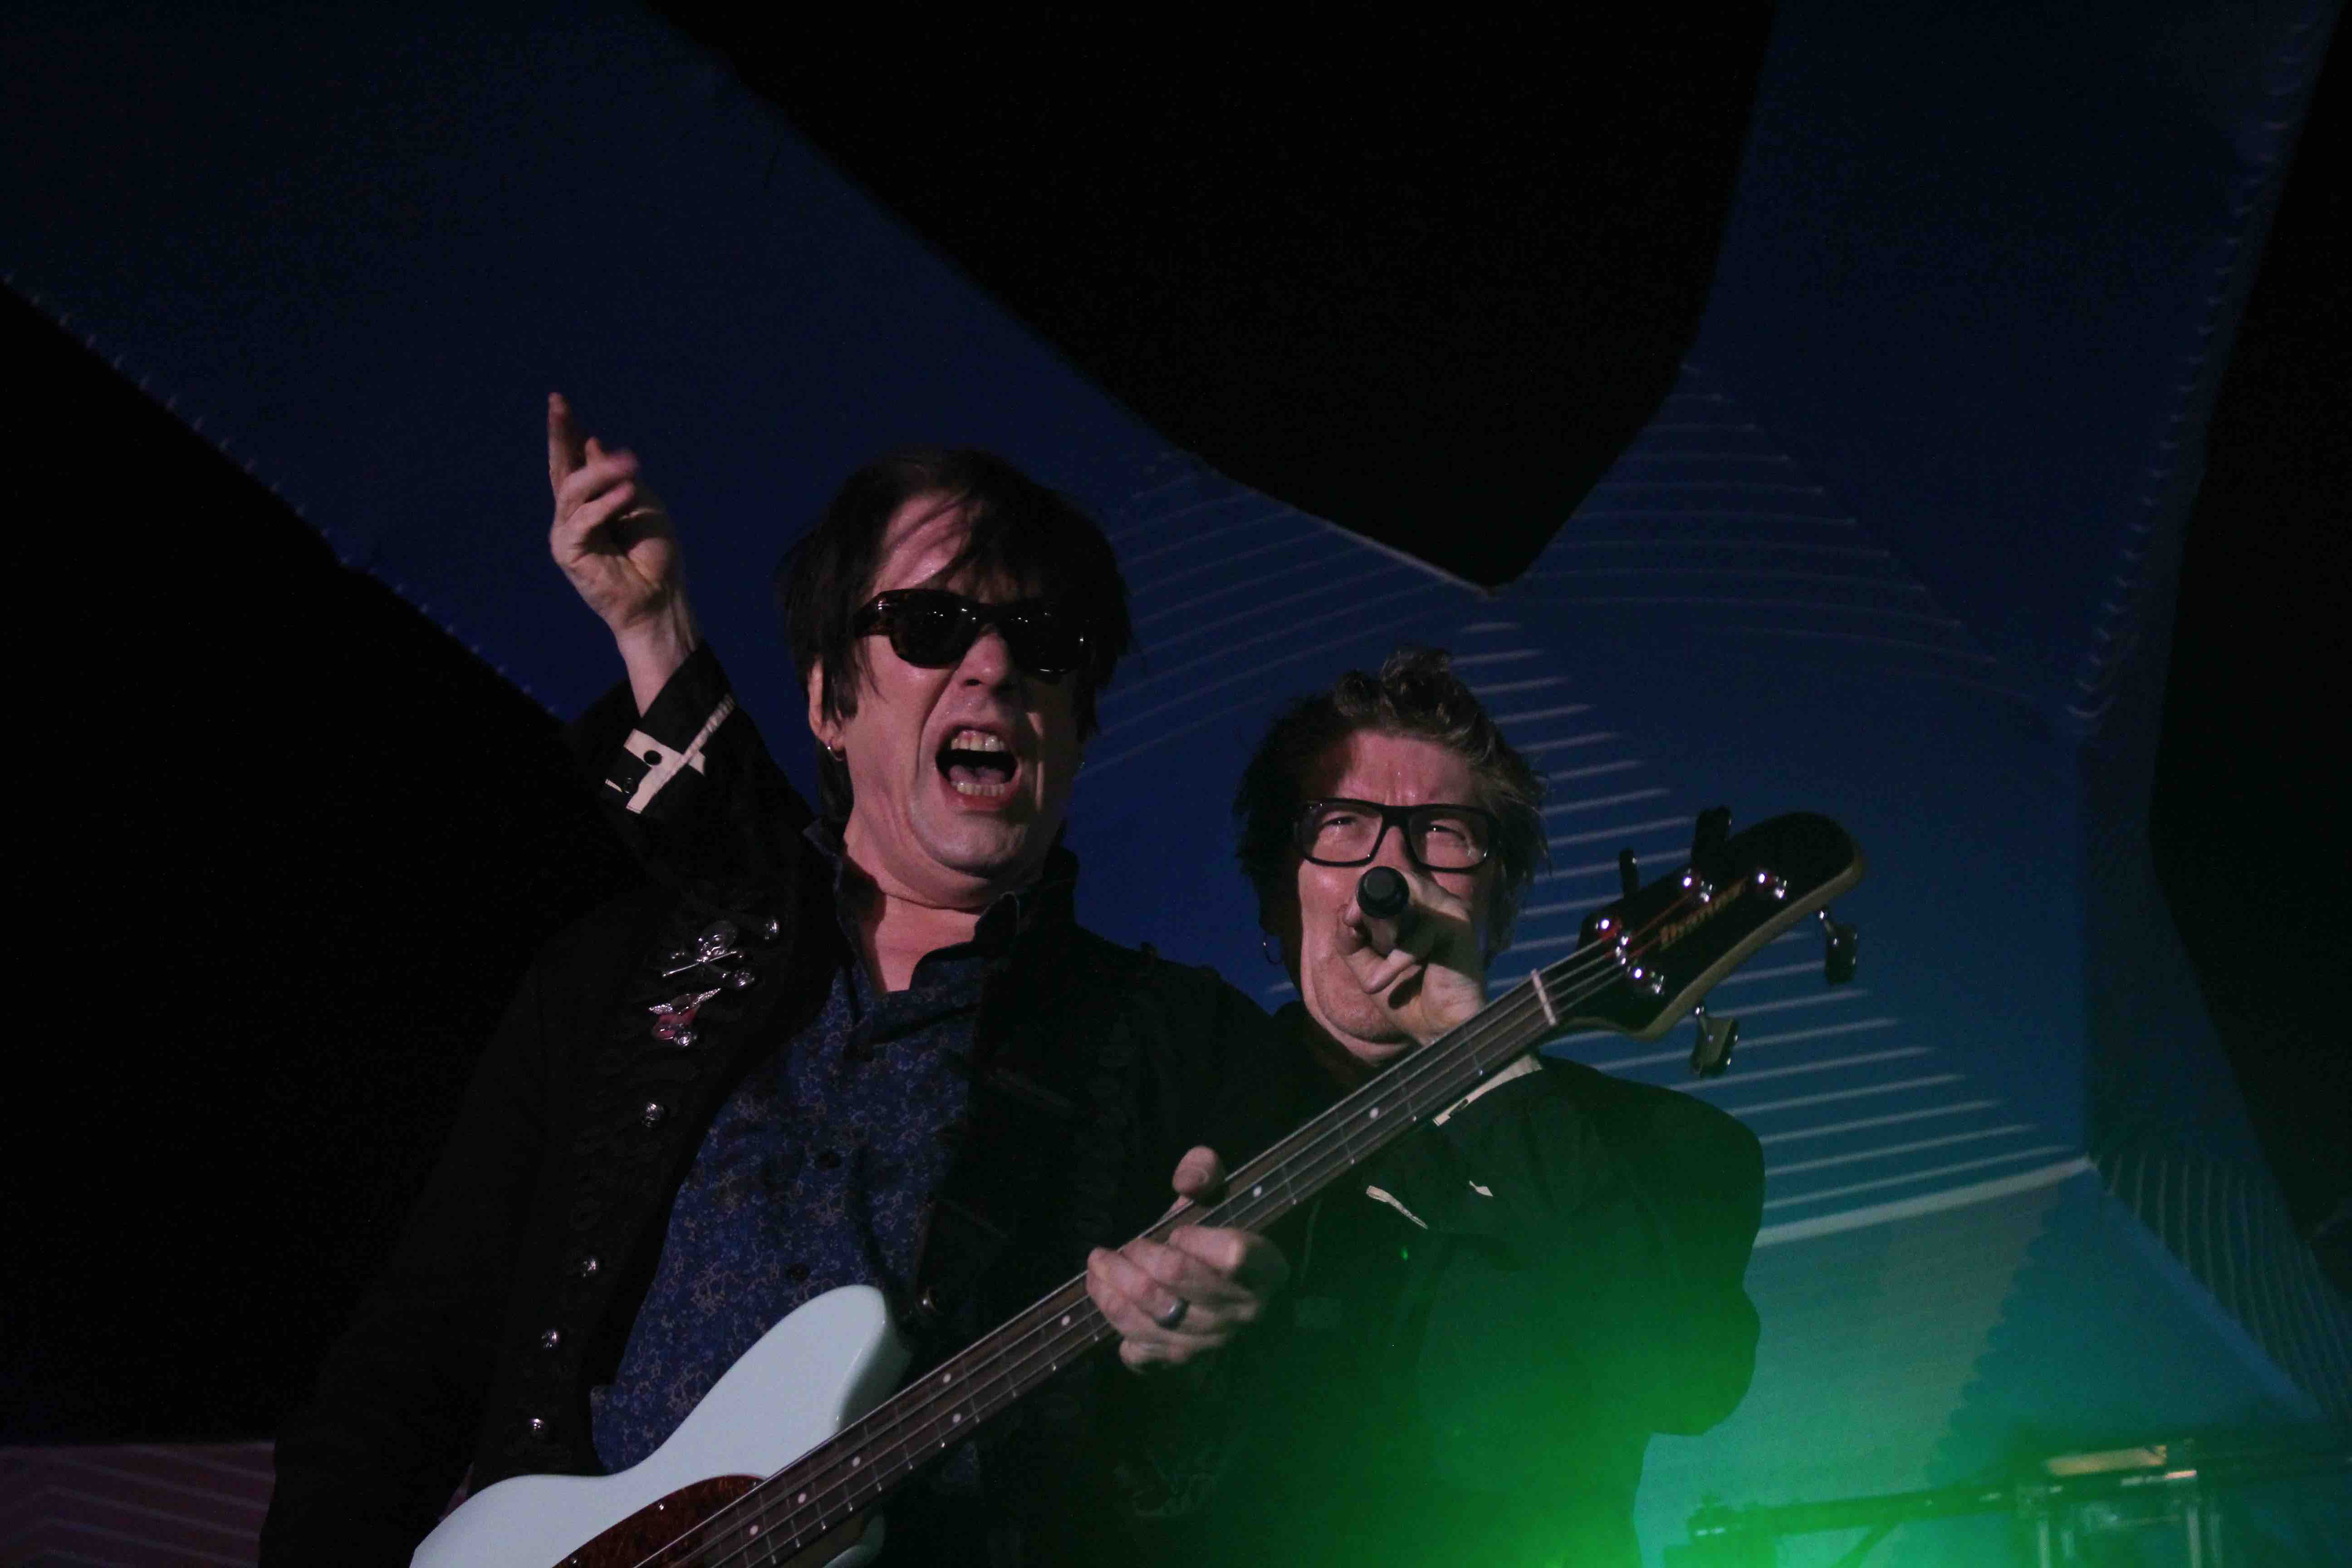 The Psychedelic Furs at Santa Monica Pier's Twilight Concert 7/21/16. Photo by Olivia Post (@livestosea).